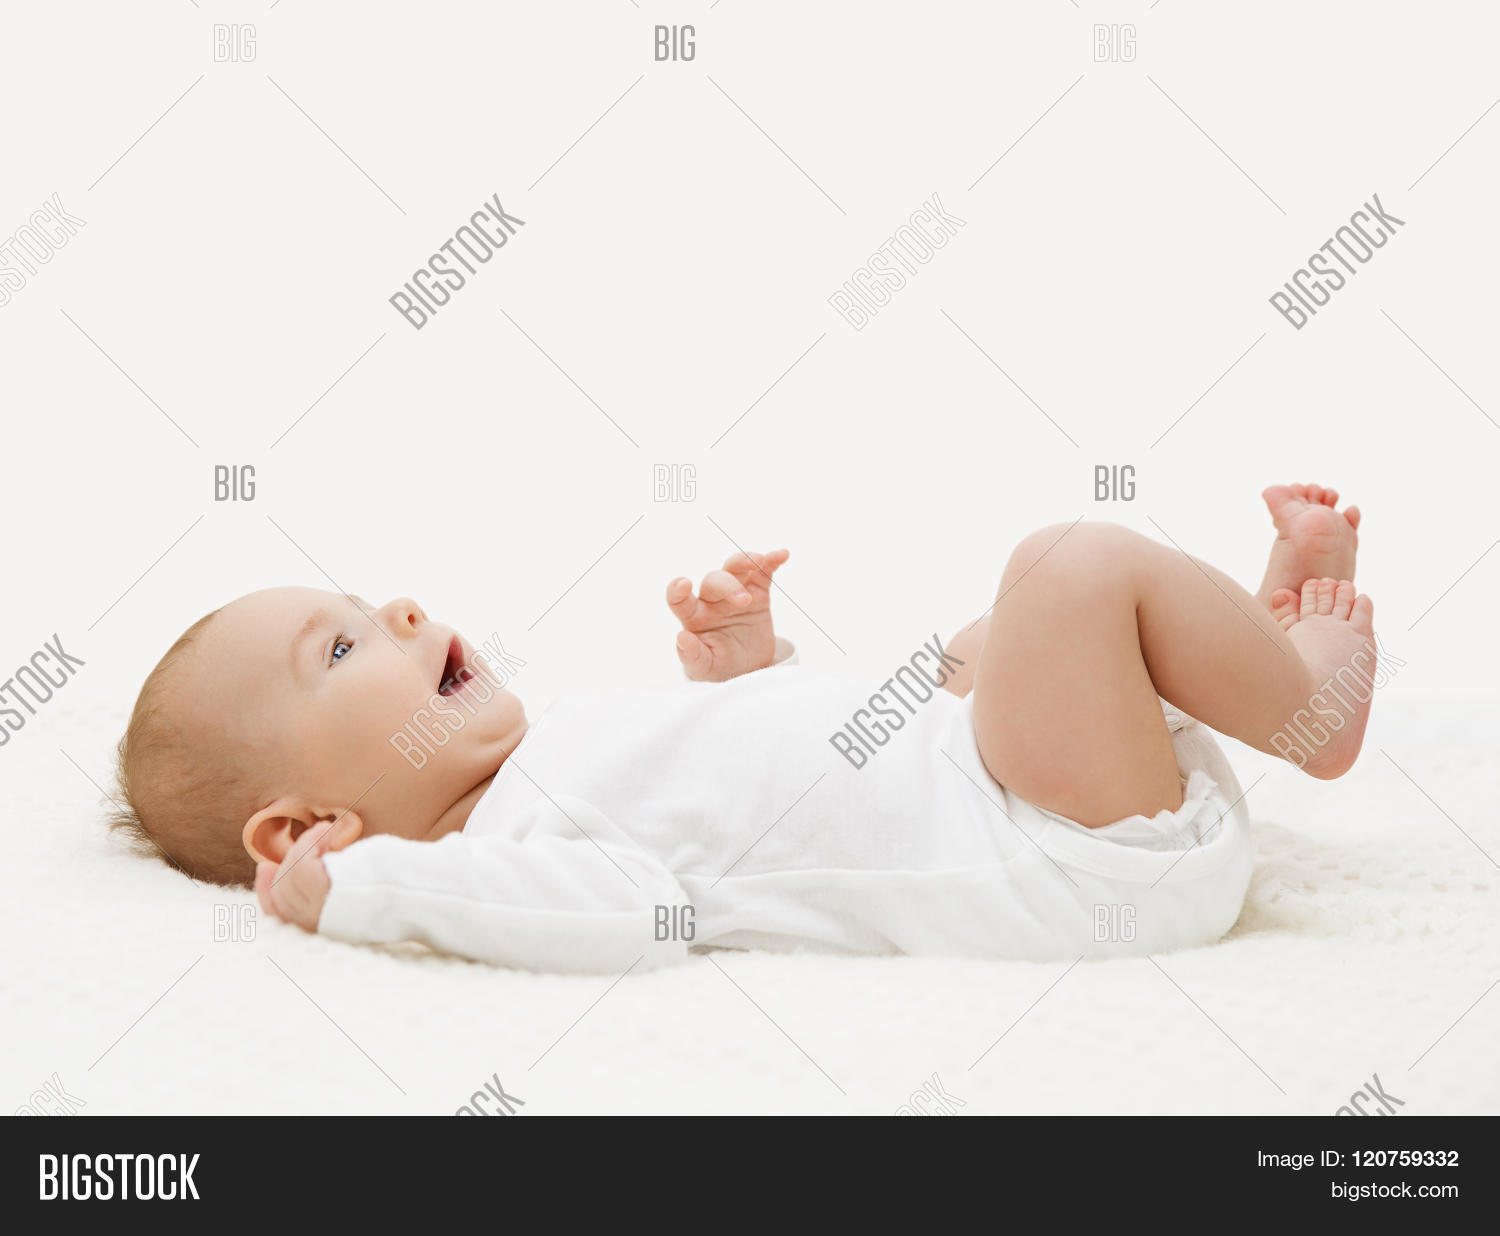 174cf7fcb70d Baby White Onesie Image   Photo (Free Trial)